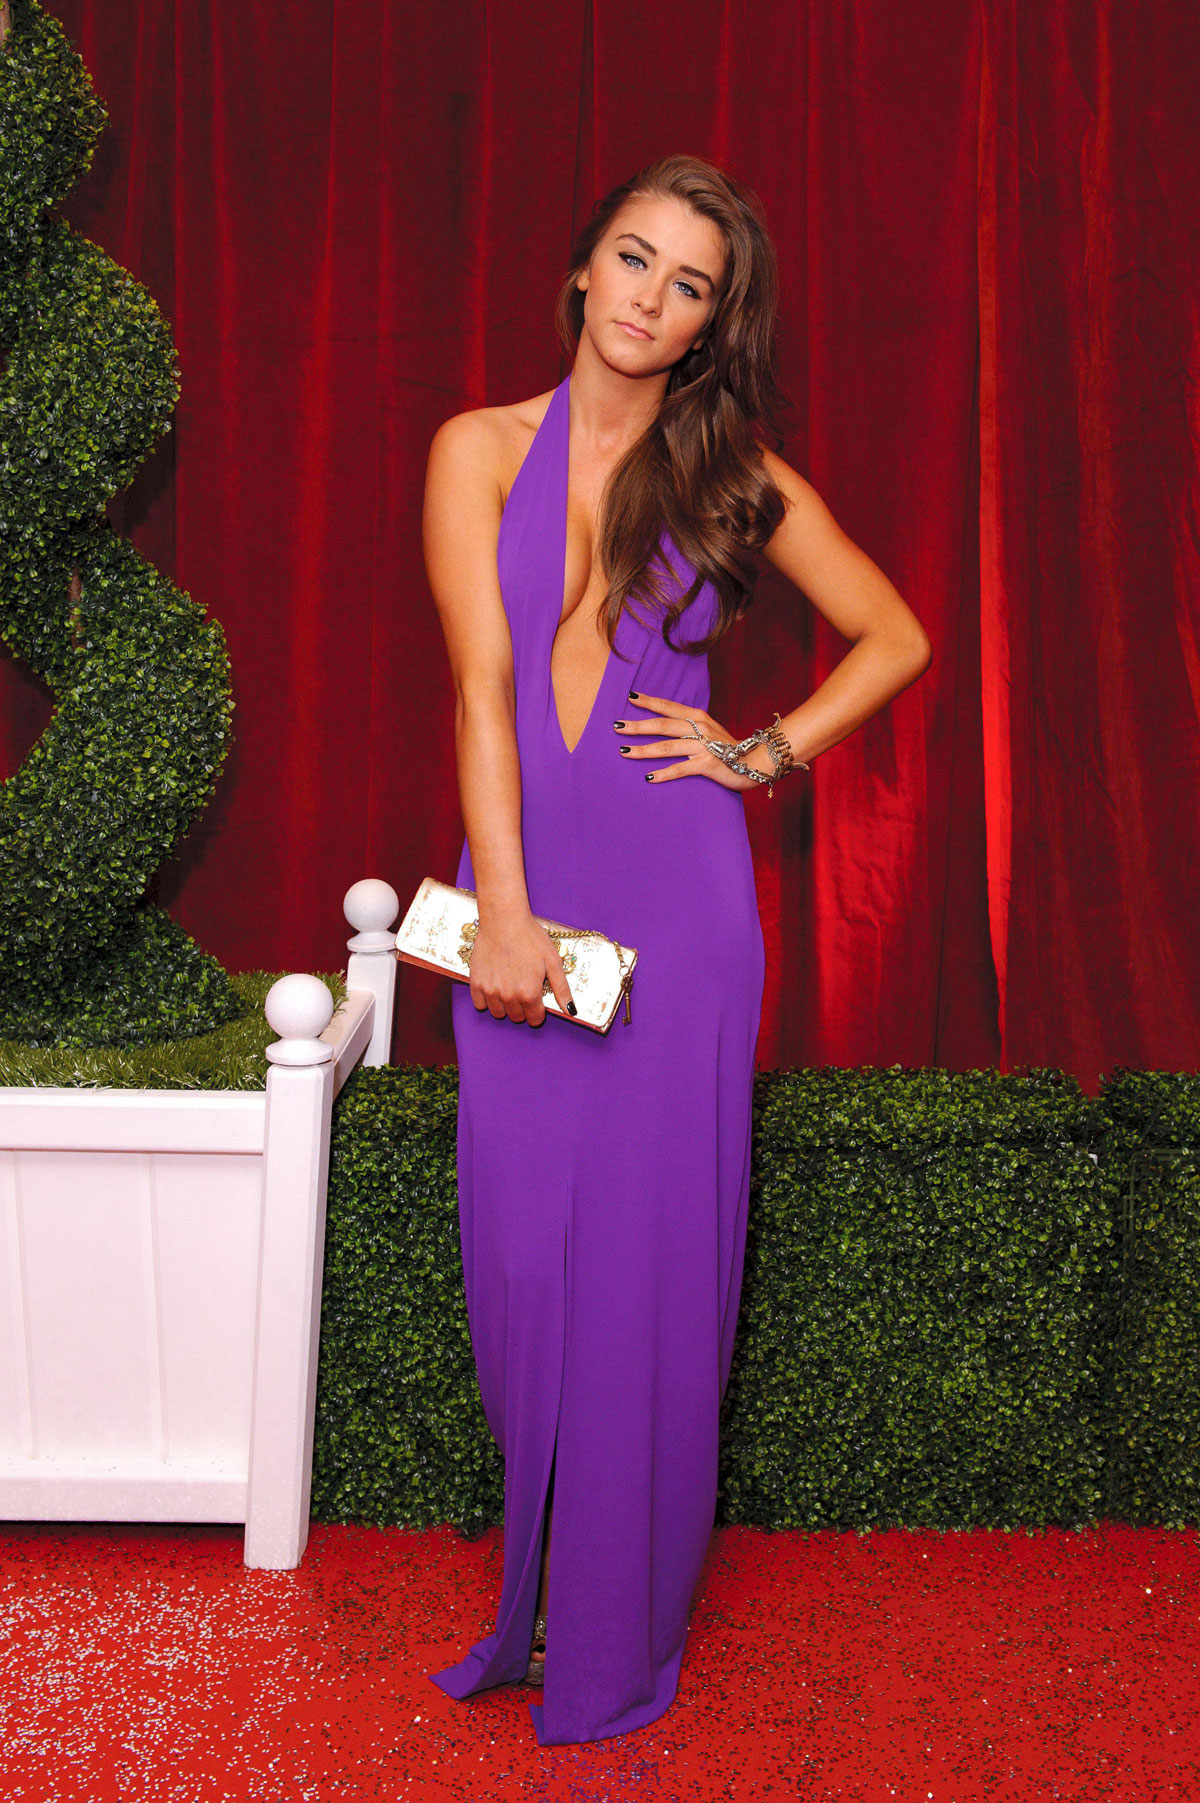 Brooke Vincent At The British Soap Awards 2012 In London